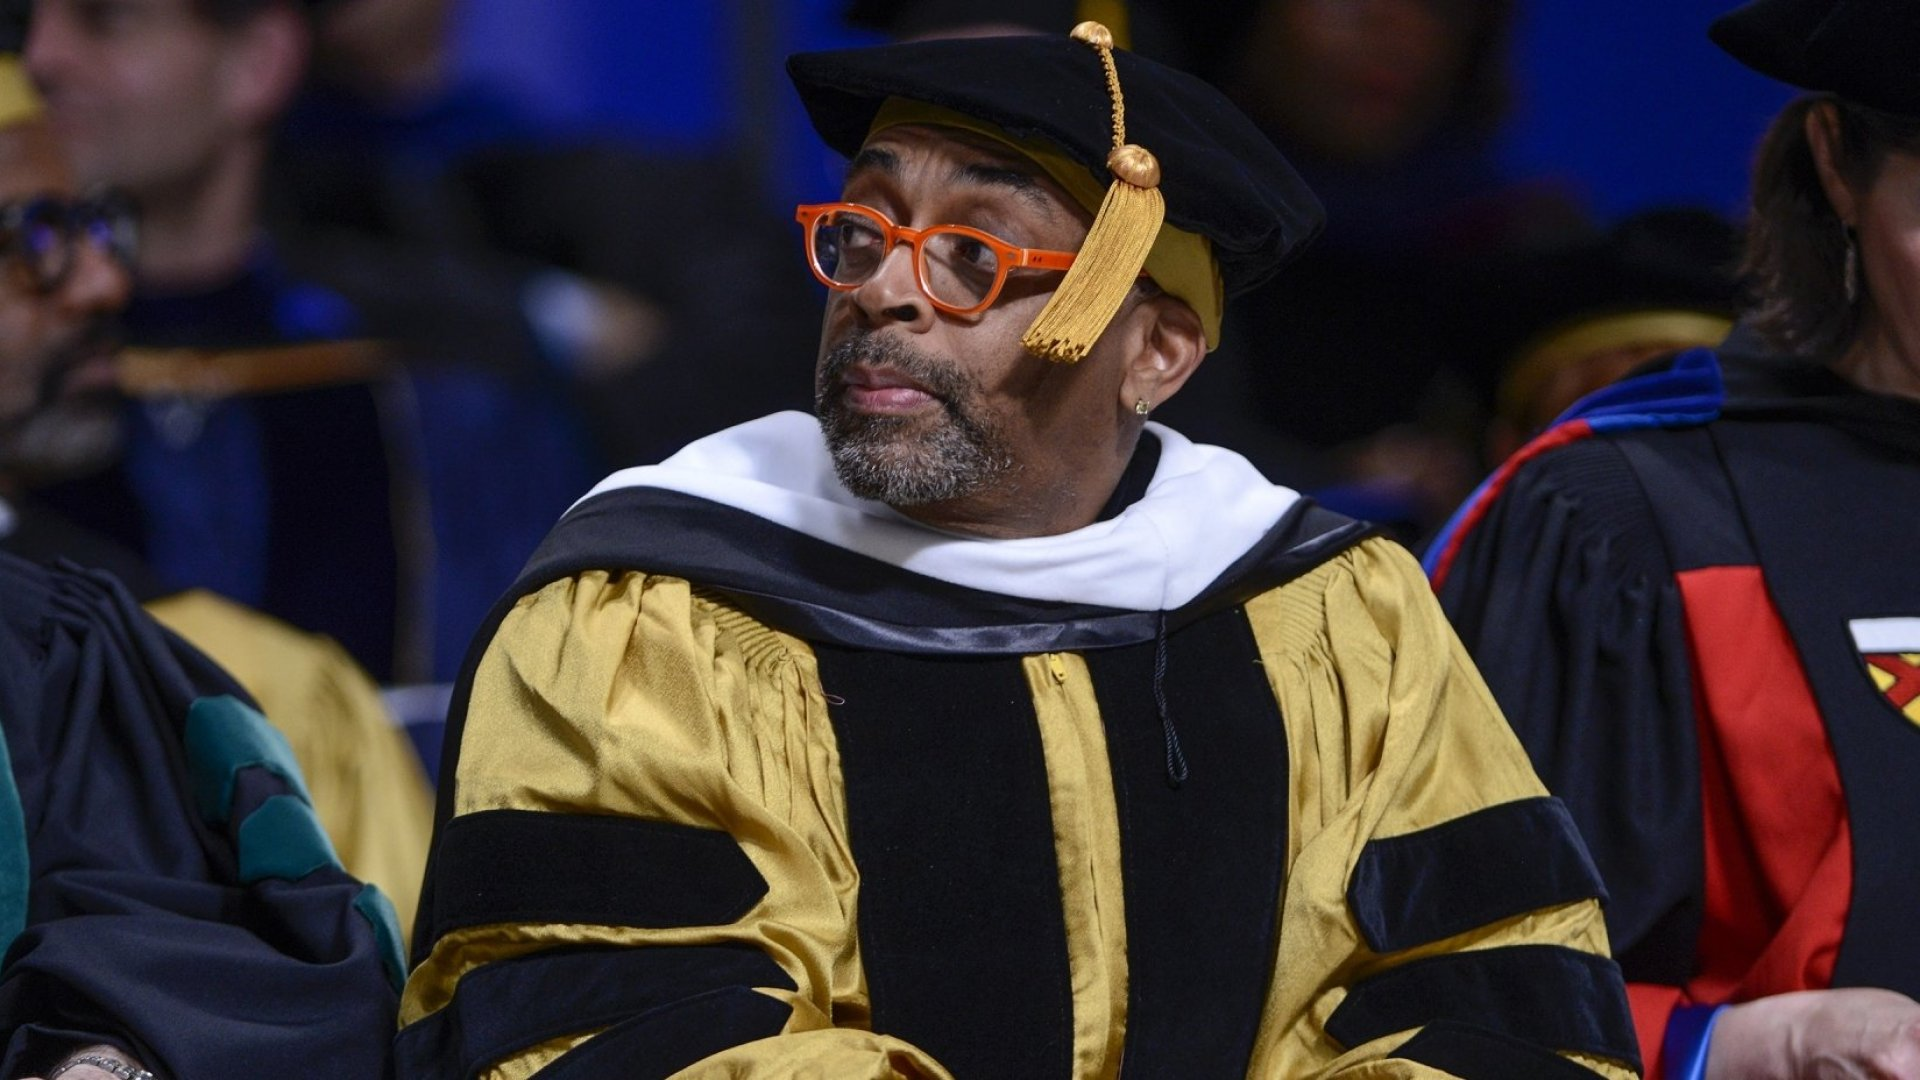 The Most Inspirational Commencement Speeches of 2016